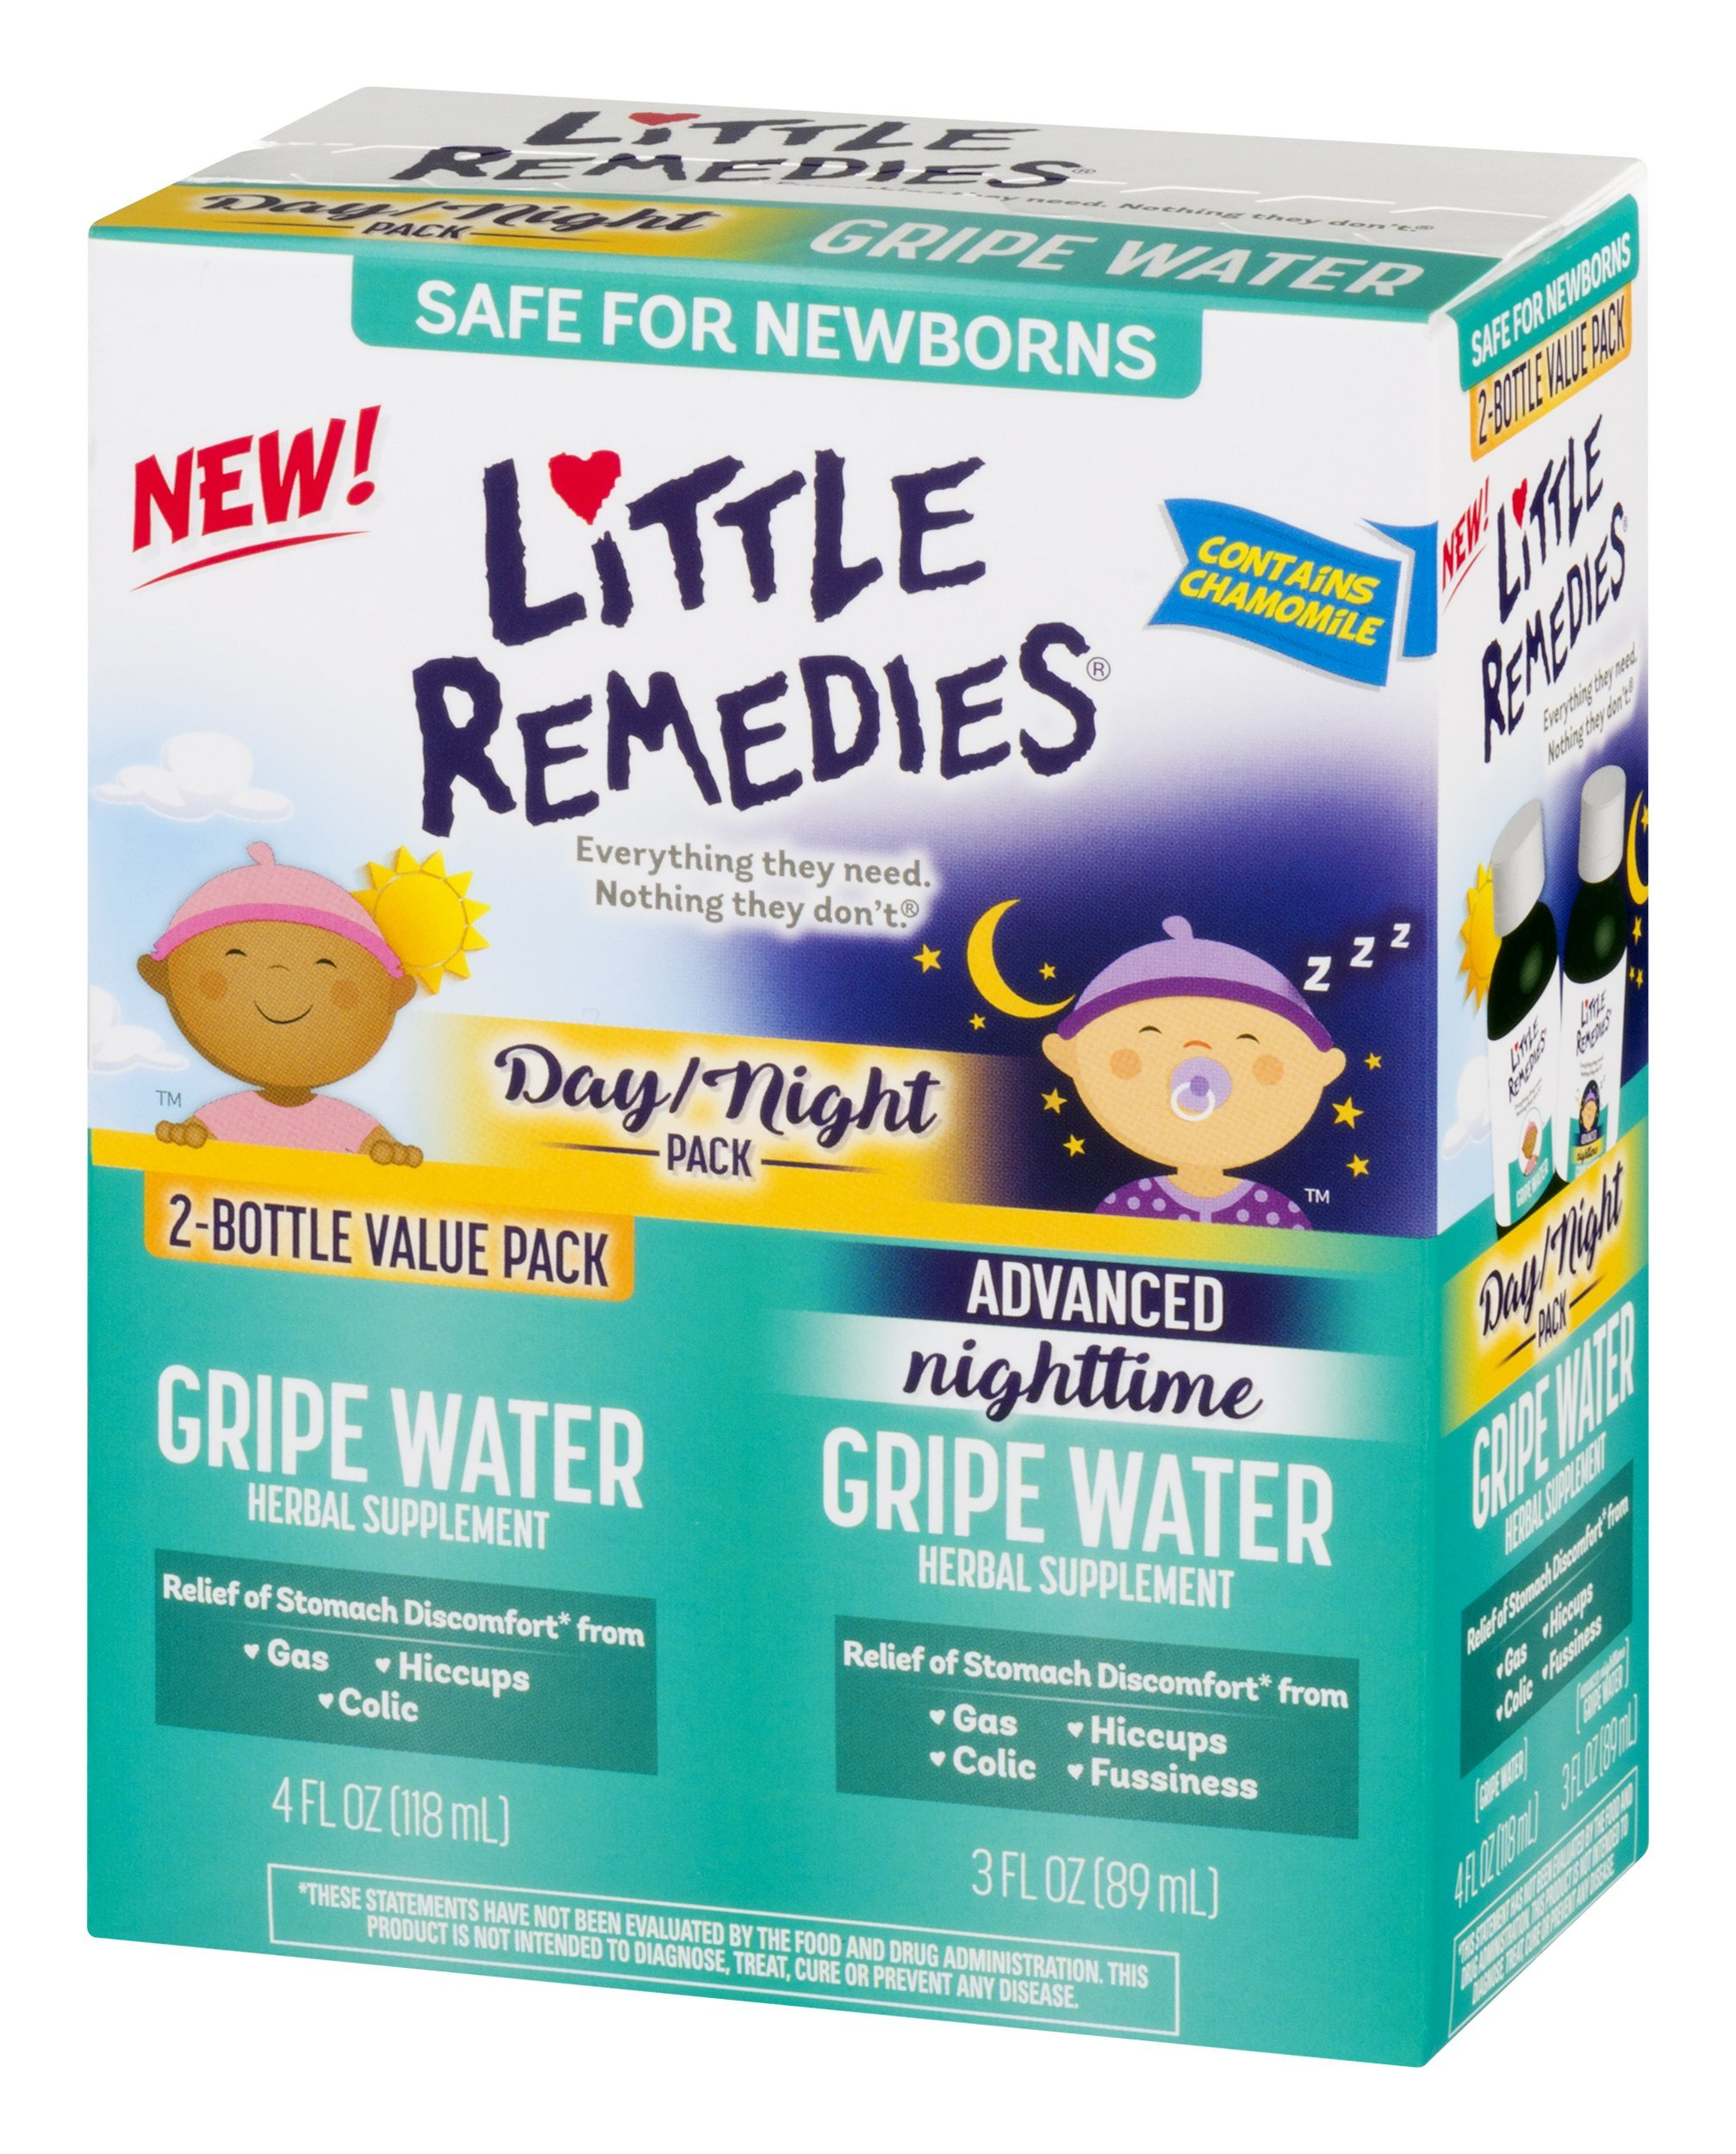 Little Remedies Day & Night Gripe Water Value Pack | Herbal Supplement | 2 Bottles | Gently Relieves Stomach Discomfort from Gas, Colic, and Hiccups | Safe for Newborns by Little Remedies (Image #2)